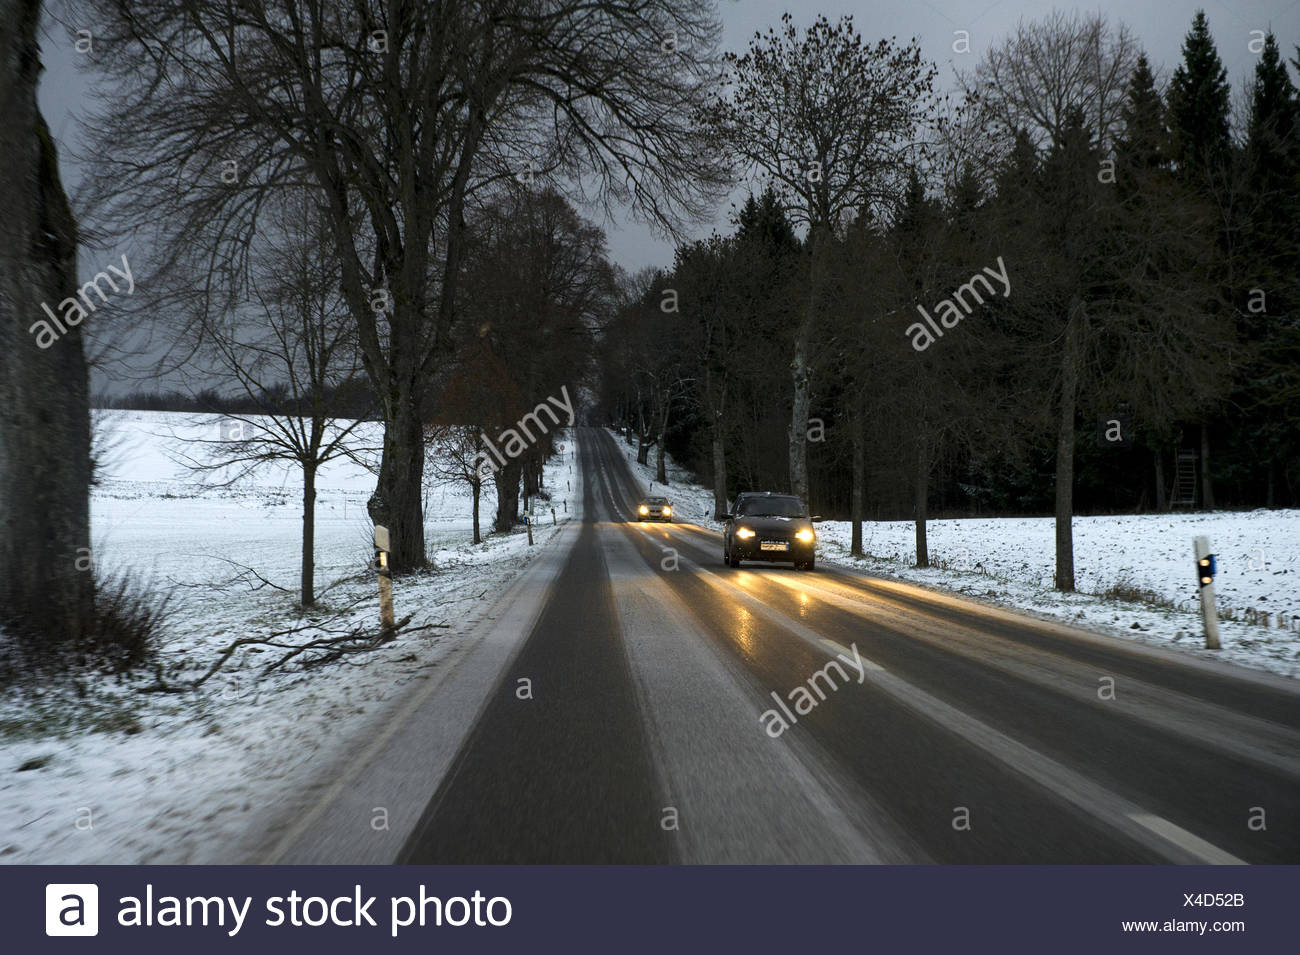 Wintry road conditions - Stock Image